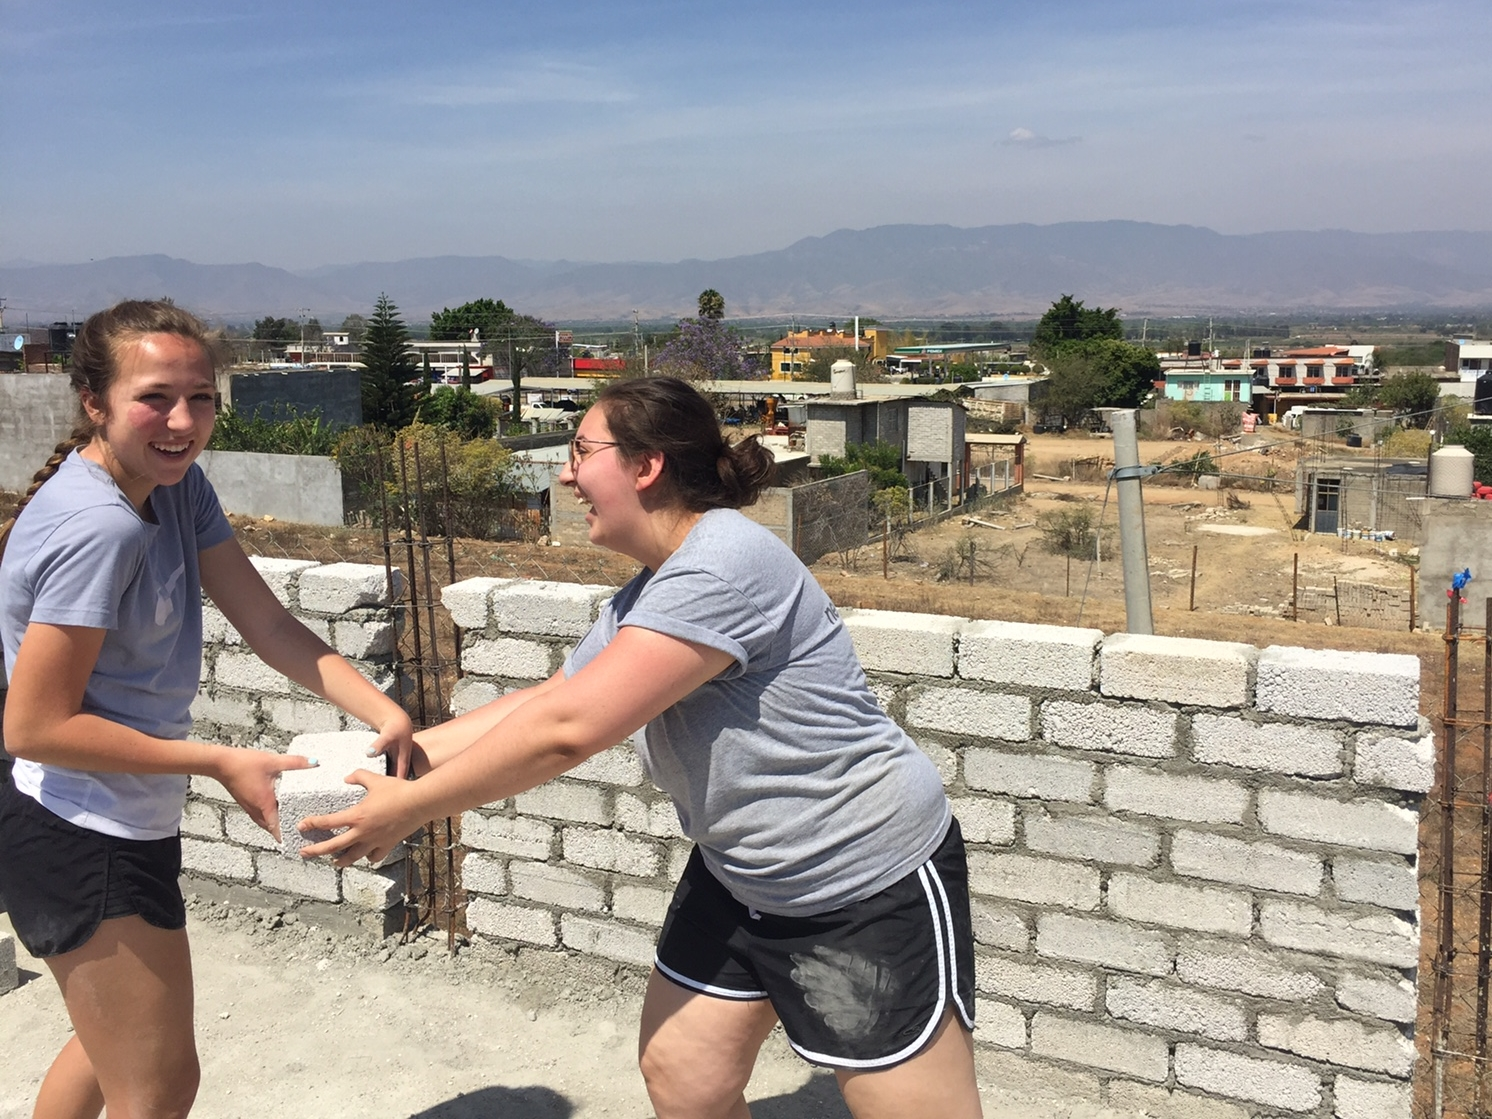 Camryn (left) and fellow volunteer, Katherine, pass cement bricks for an expansion of a patio at Casa Hogar Simply Smiles.